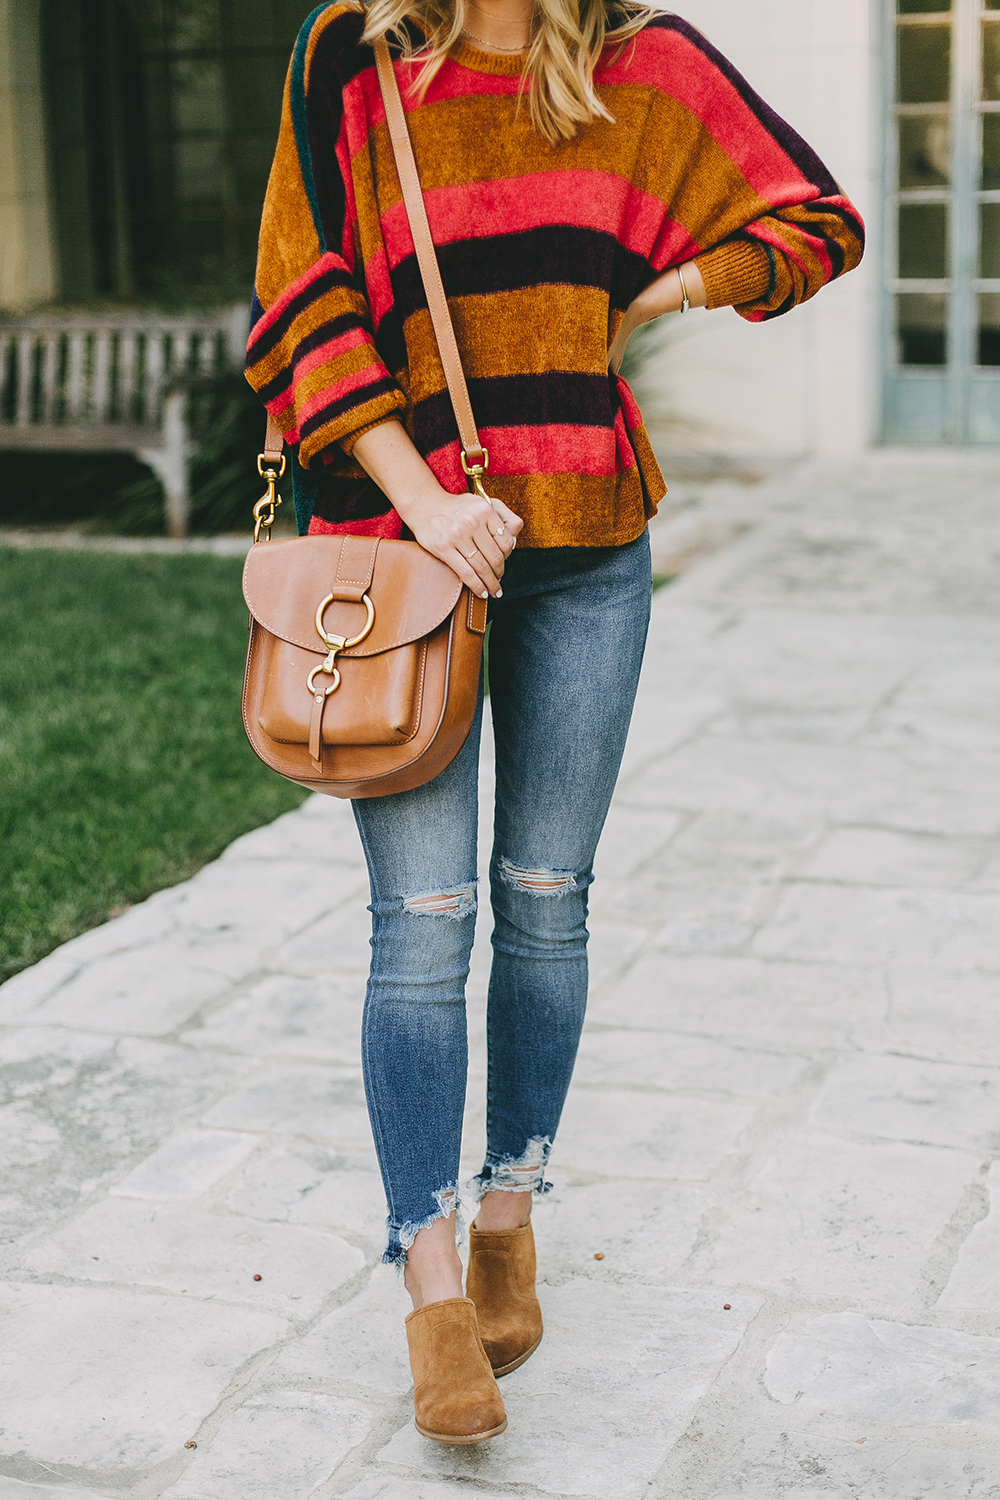 livvyland-blog-olivia-watson-austin-texas-fashion-blogger-free-people-oversize-striped-sweater-boho-chic-2